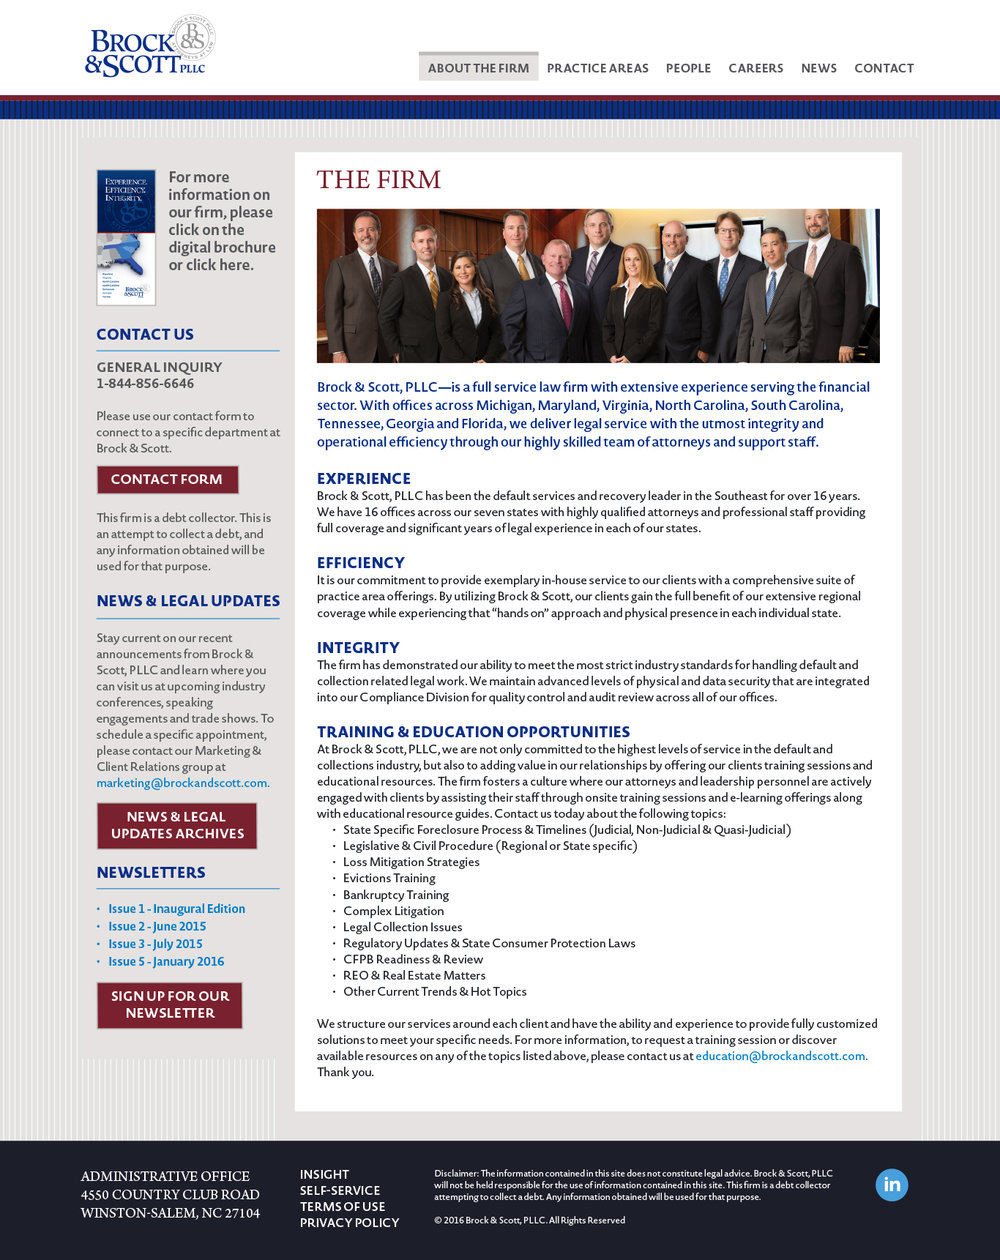 Website - The Firm